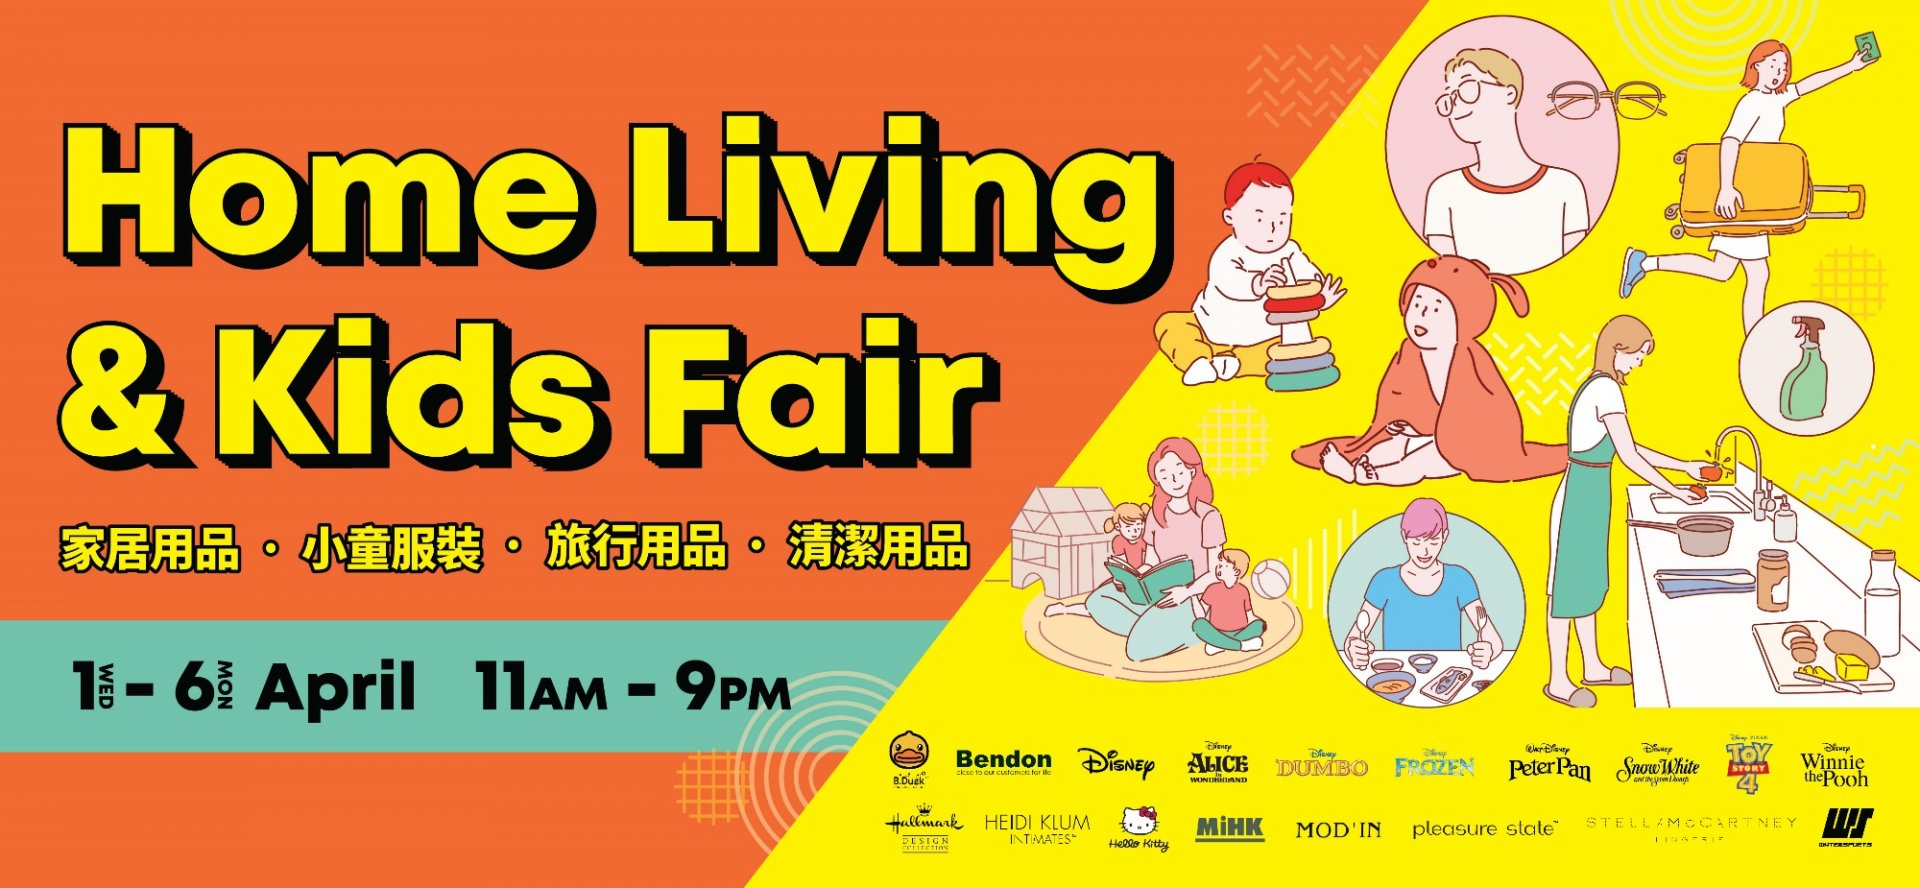 Home Living & Kids Fair